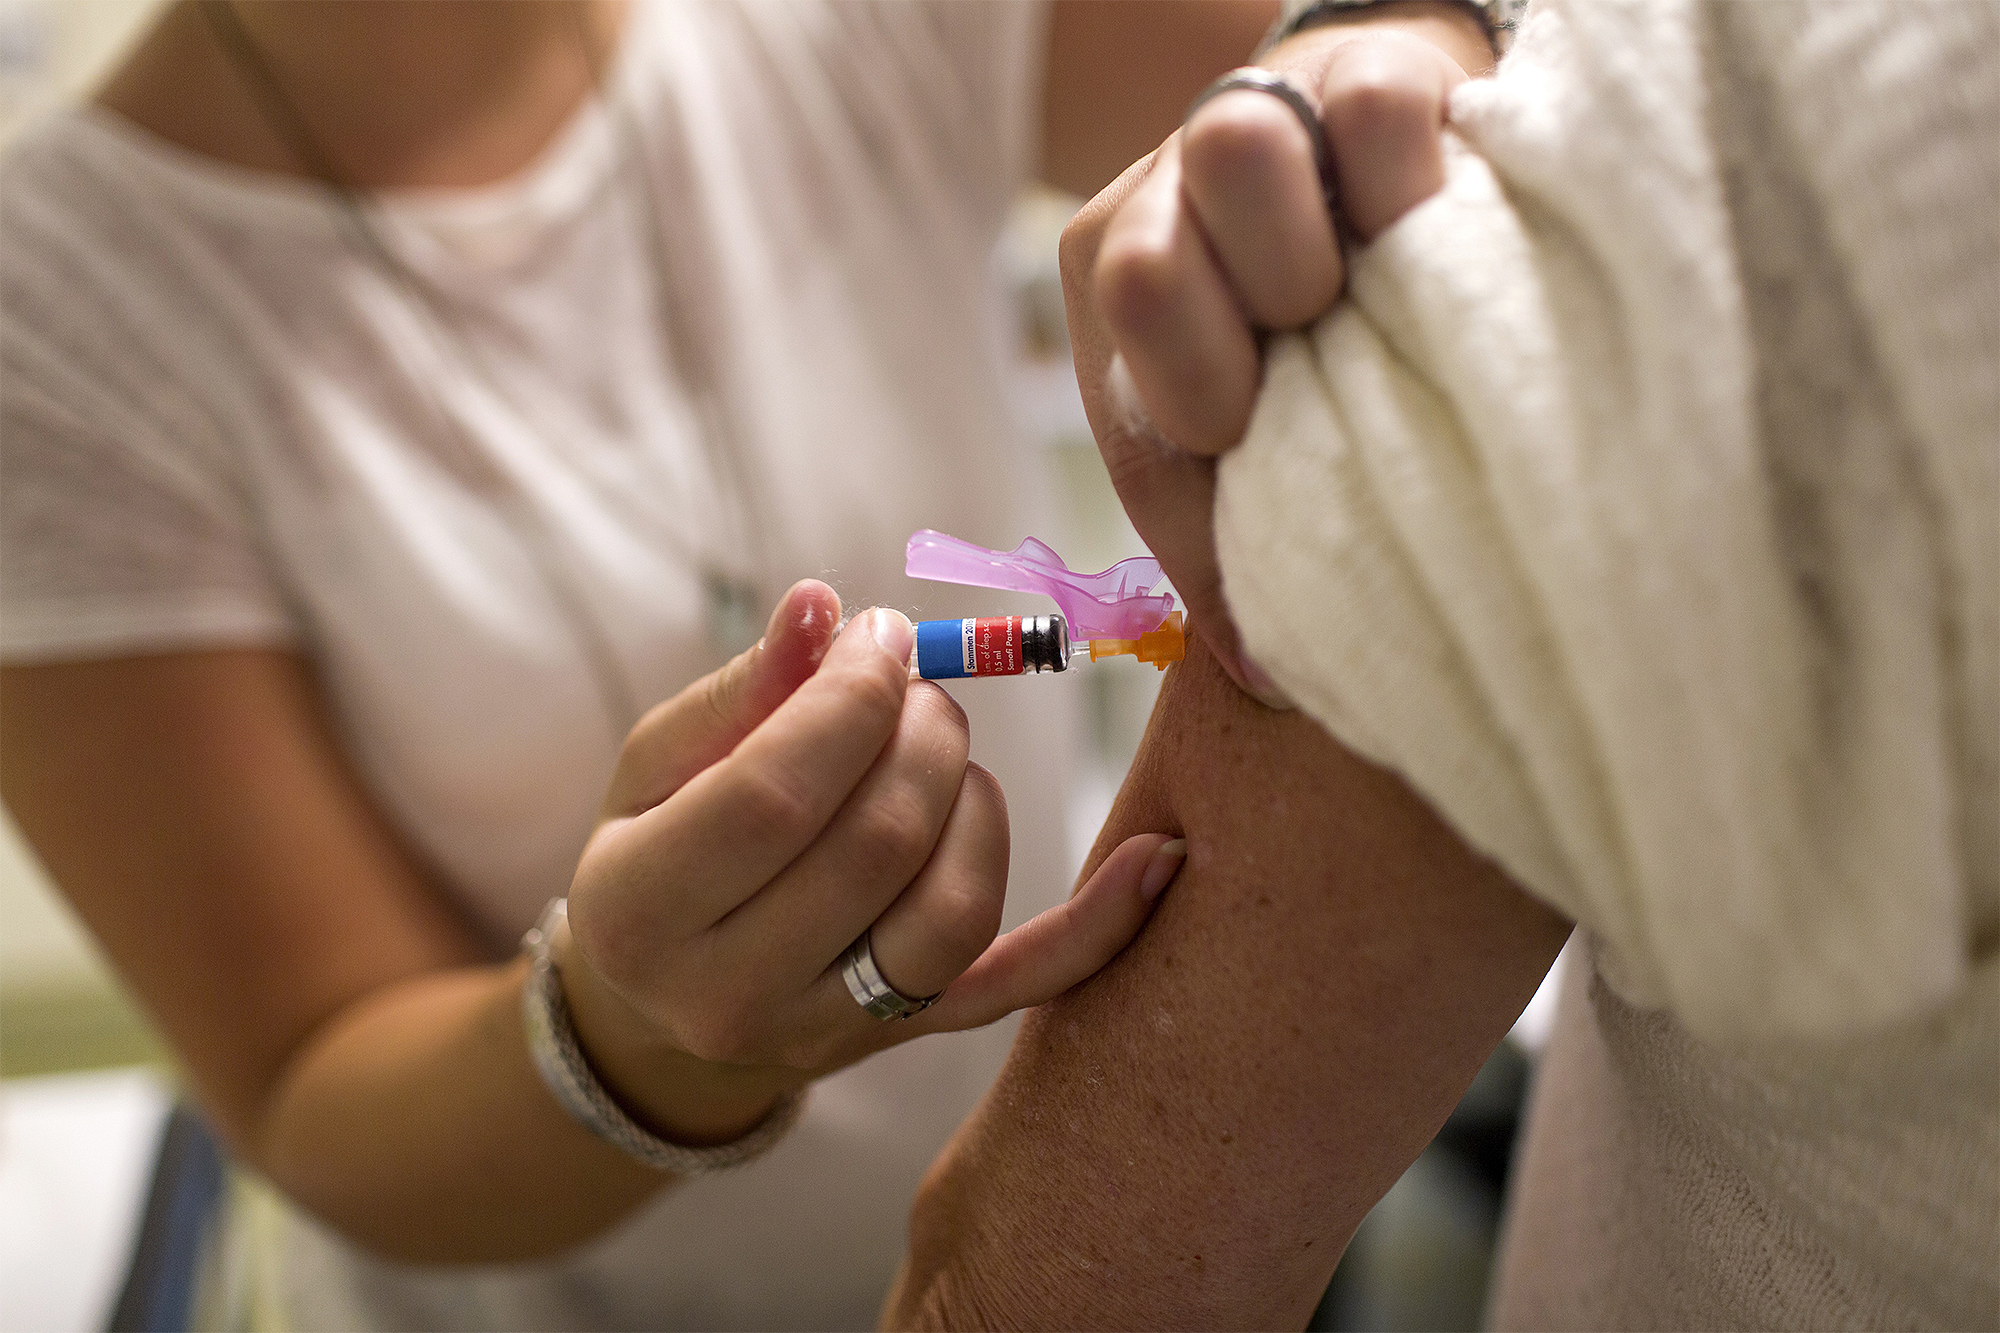 Person receiving vaccination against influenza